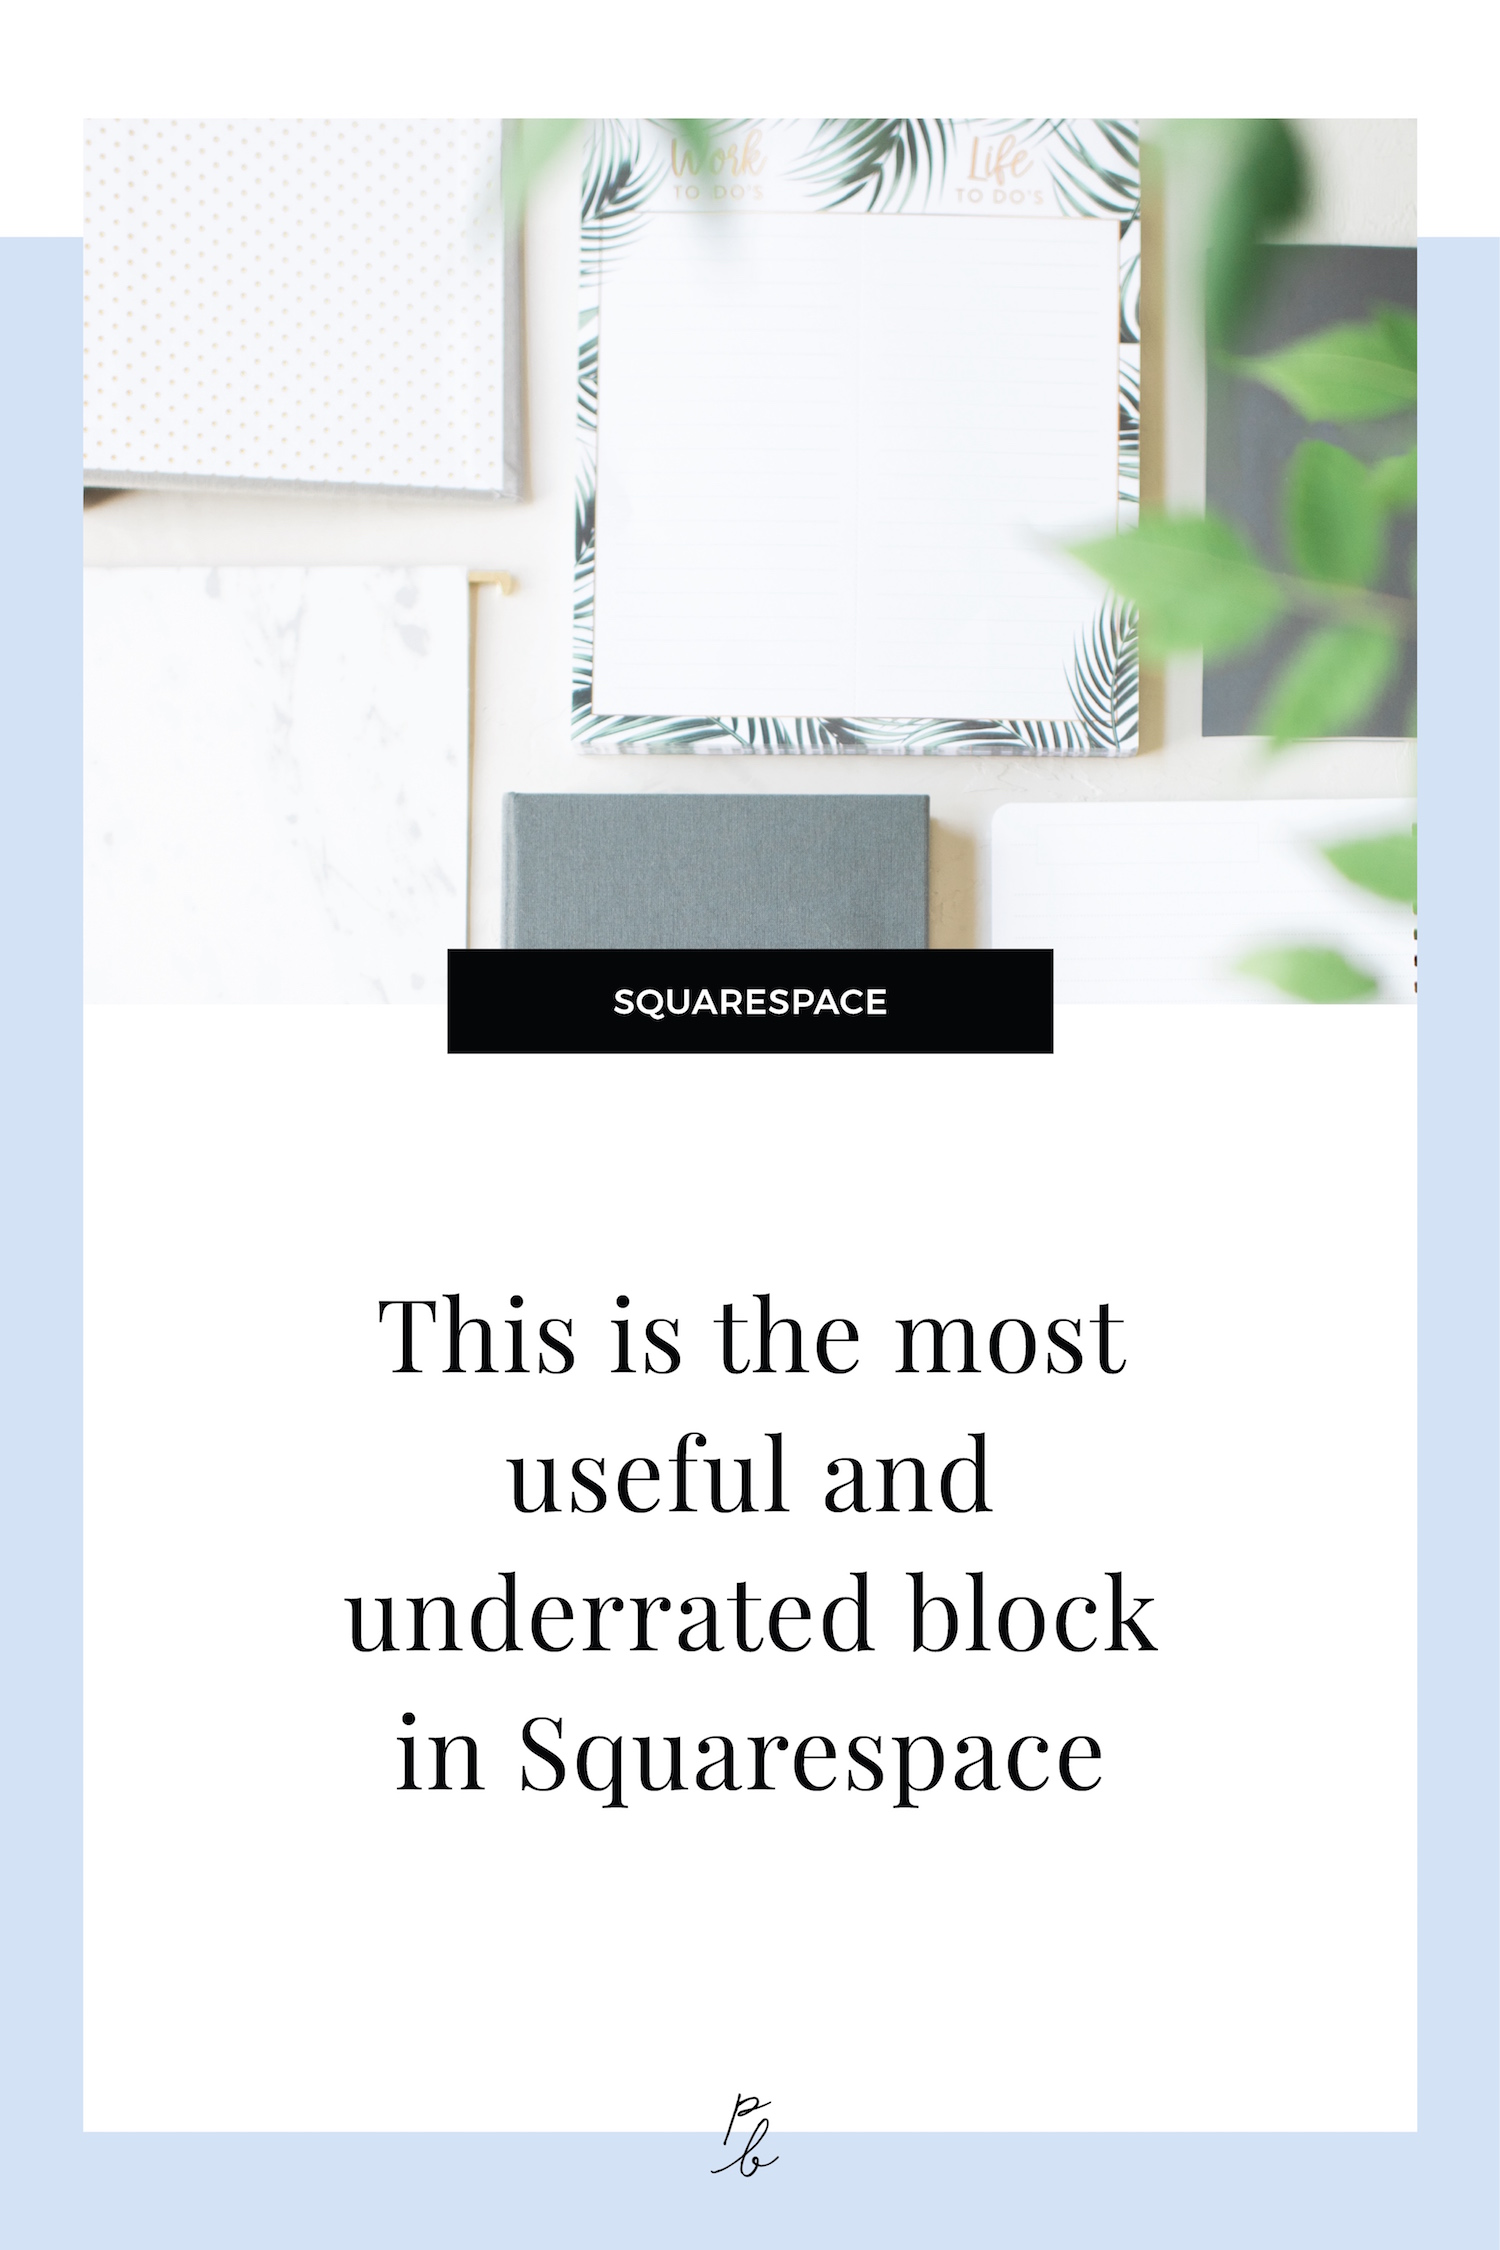 This is the most useful and underrated block in Squarespace.jpg